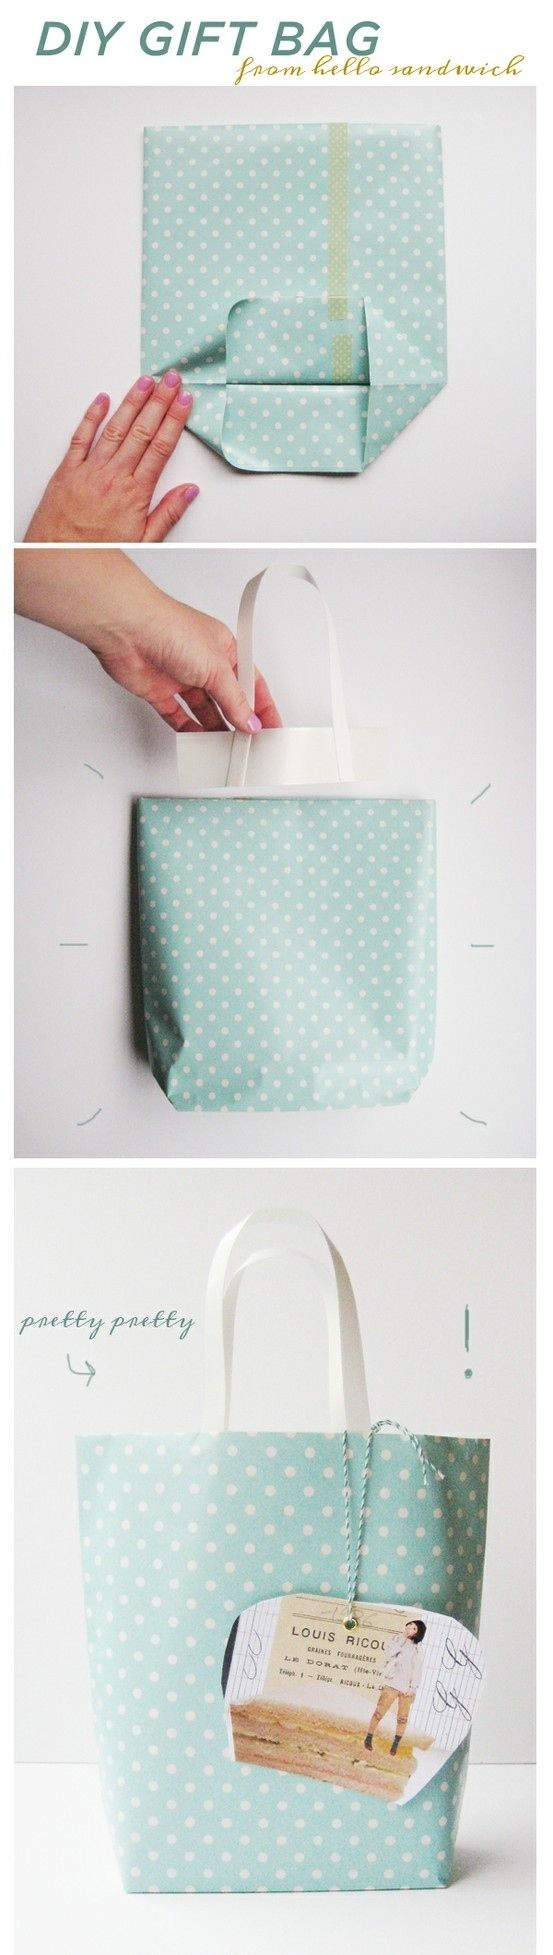 Make your own gift bag: